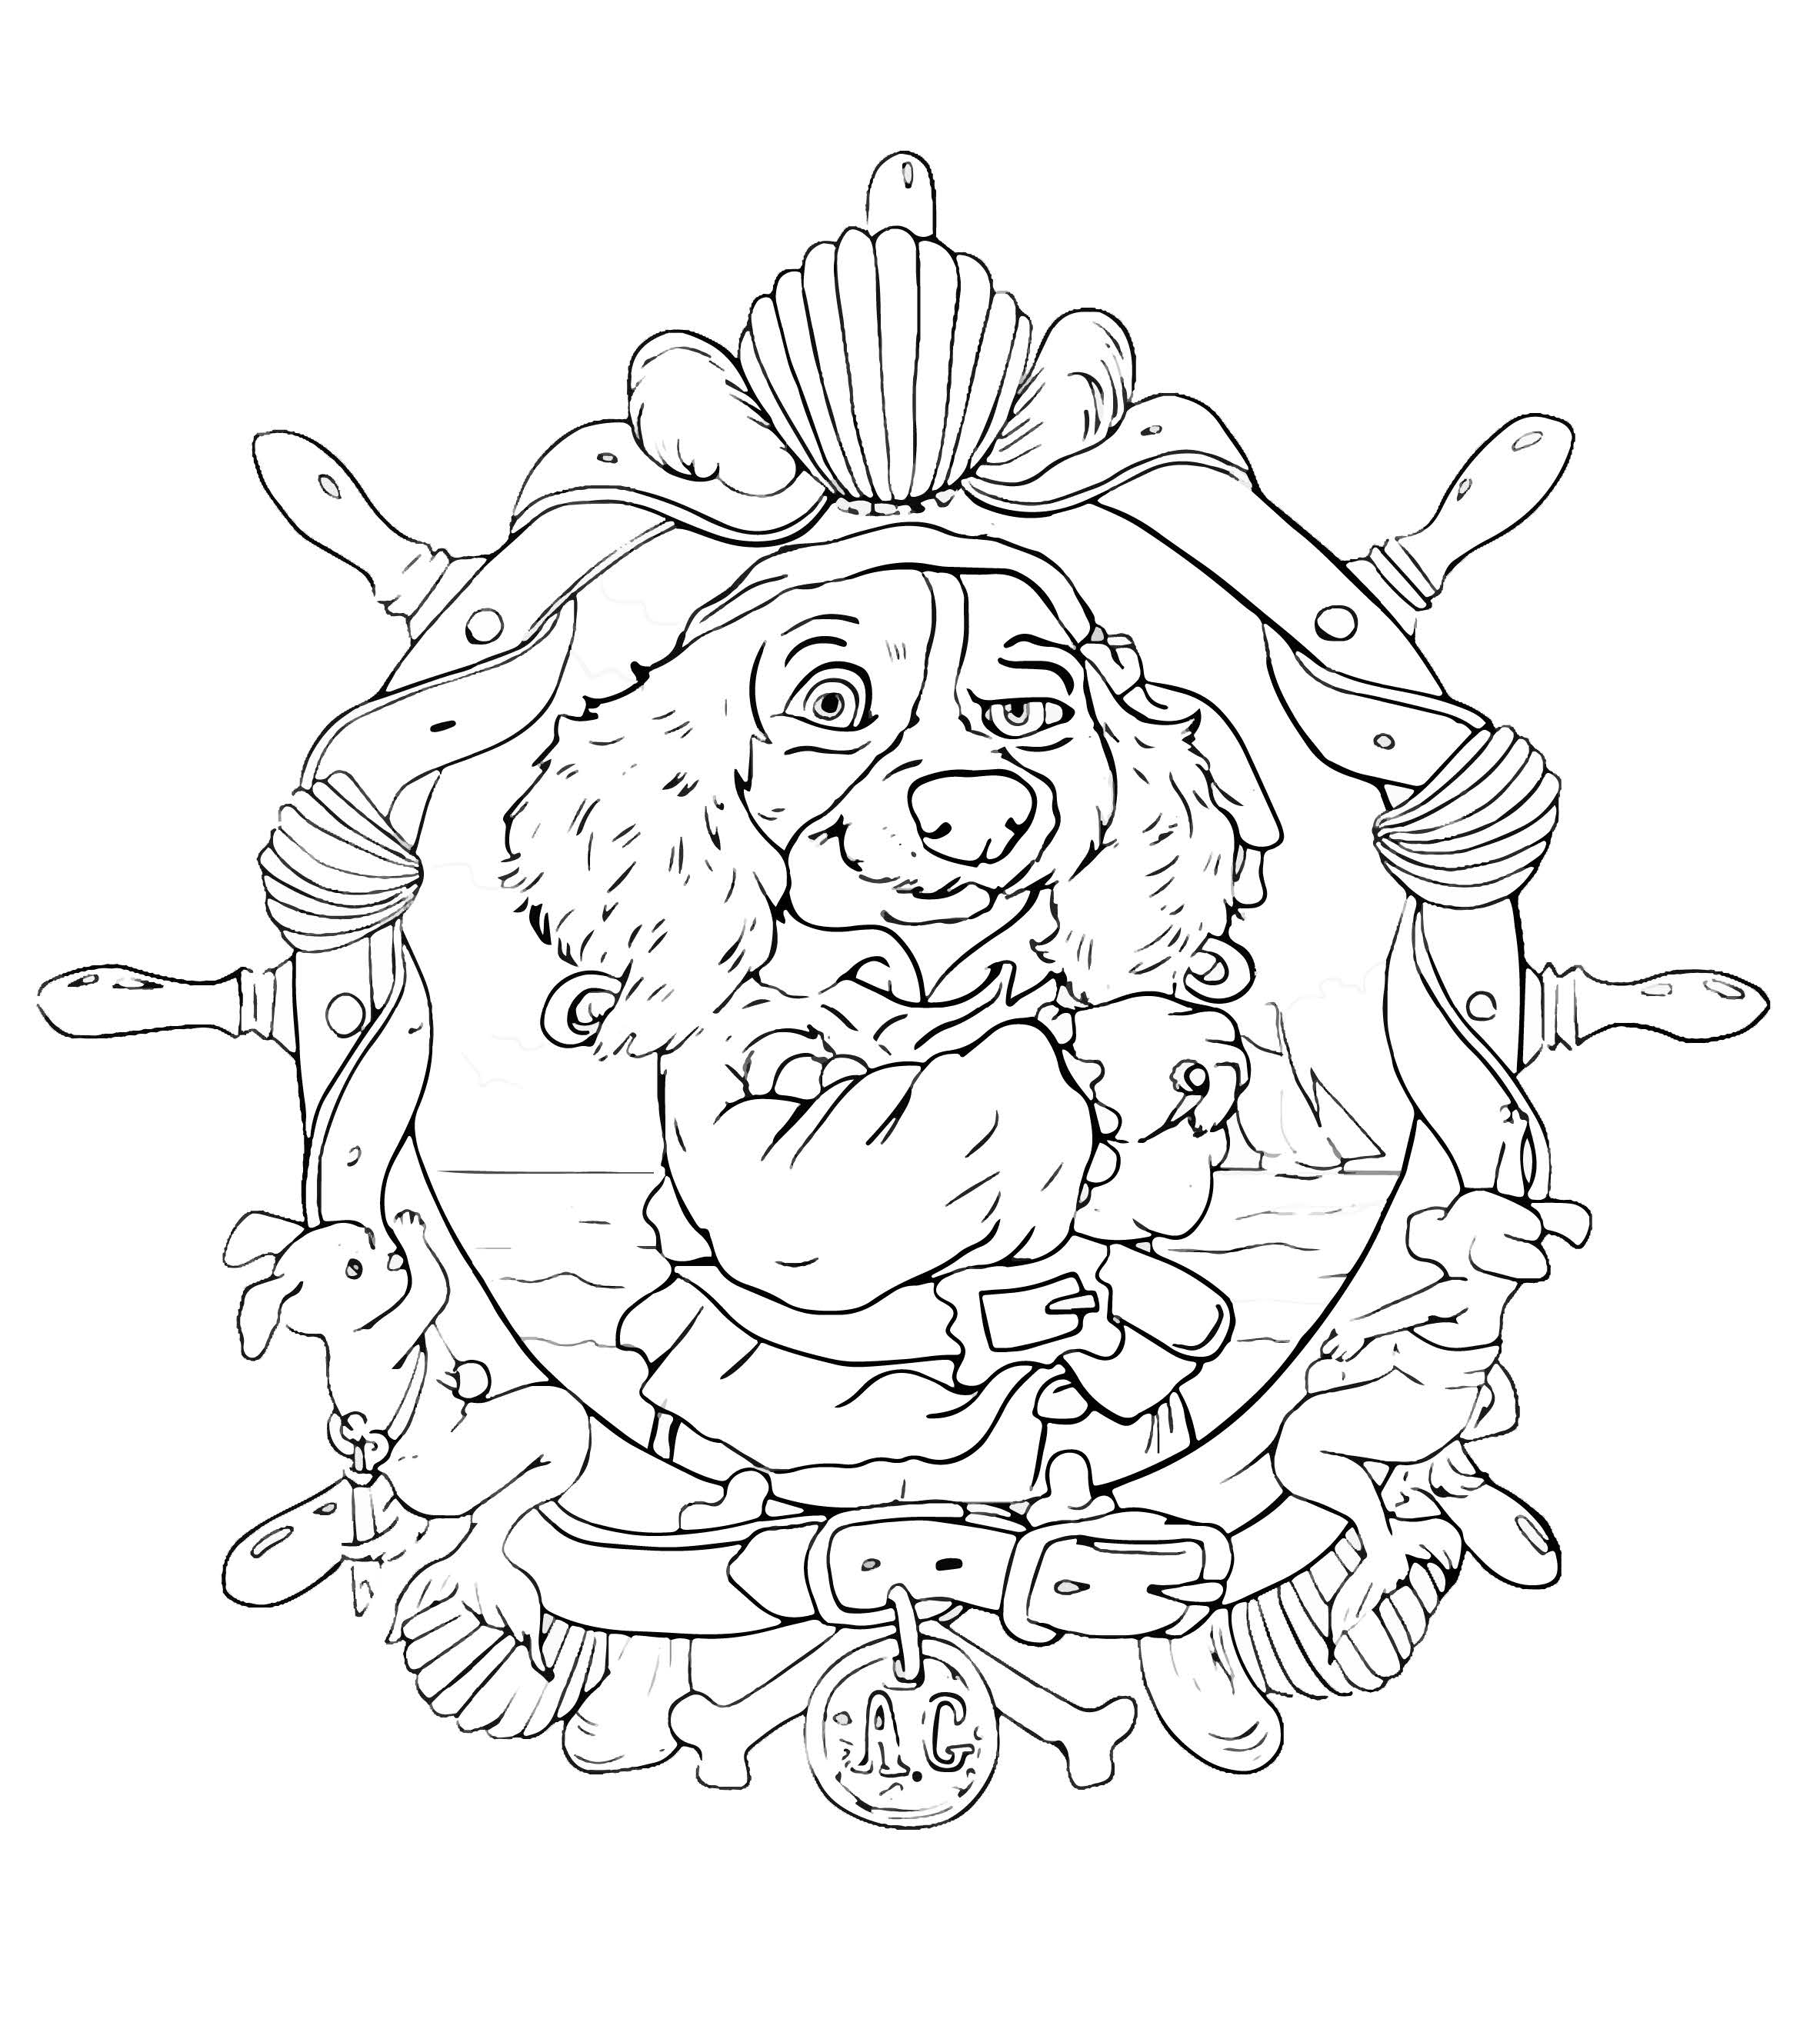 Augusta Garrick Colouring Page